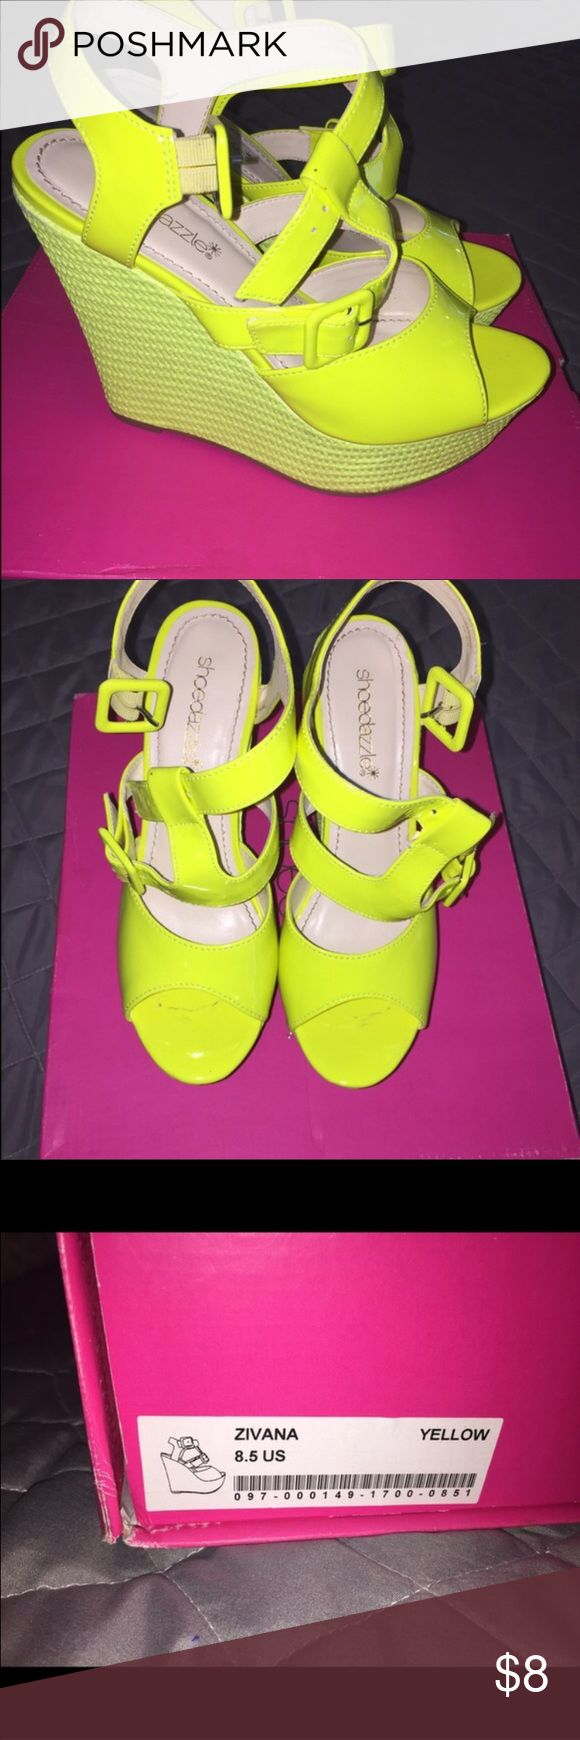 Shoe dazzle wedges Neon yellow shoe dazzle wedges, bright, fun, in original box and in great condition. Shoe Dazzle Shoes Wedges